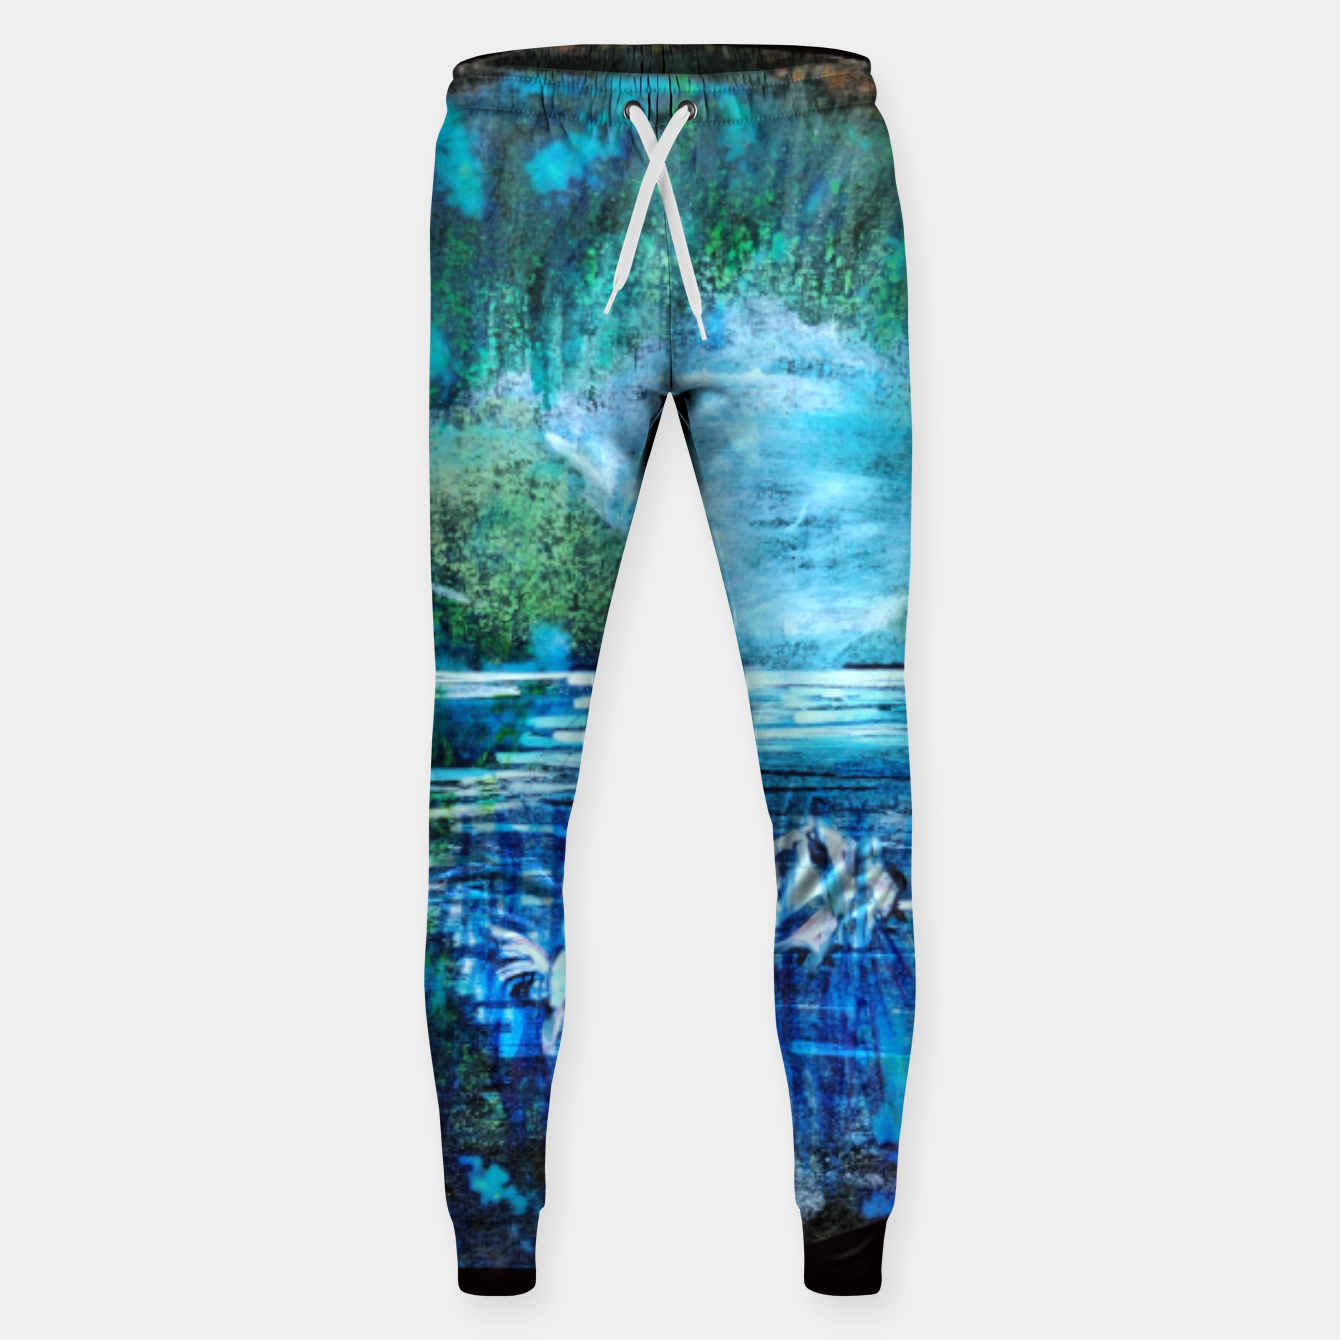 Image of lost and found world 2 brain art for paratissima 19 Yulia A Korneva mri immage Sweatpants - Live Heroes